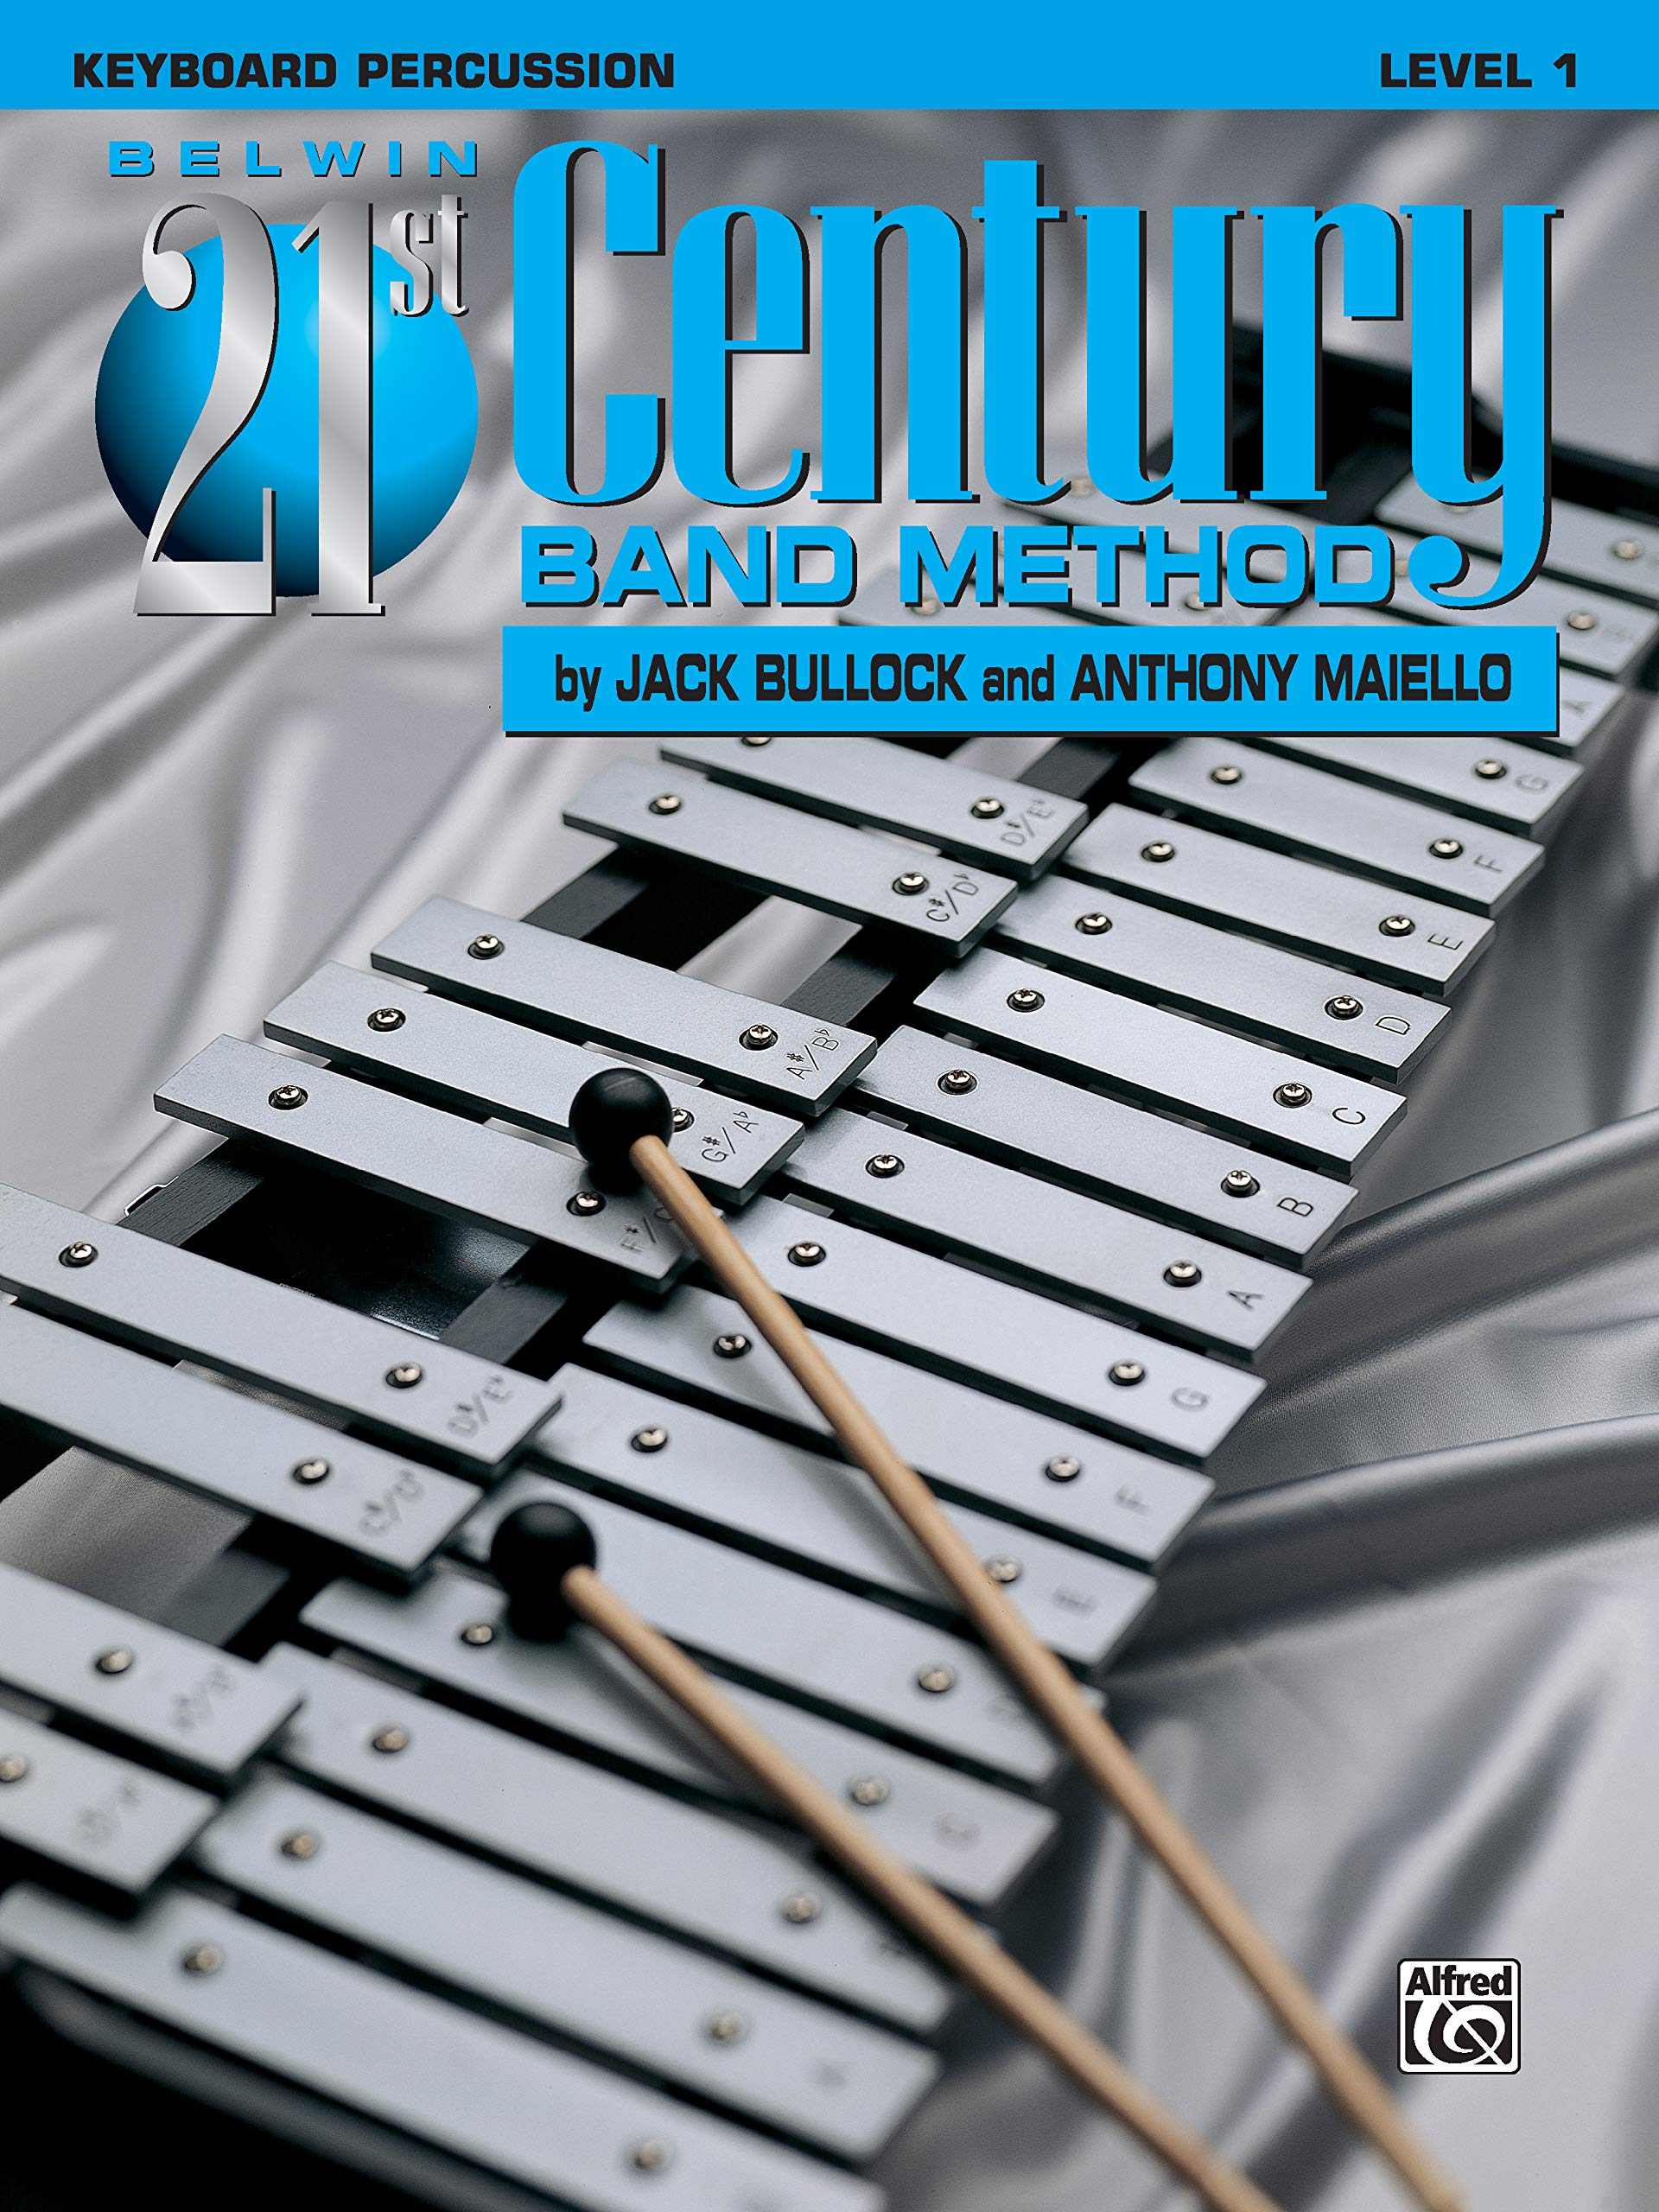 Belwin 21st Century Band Method Level 1 Percussion Book